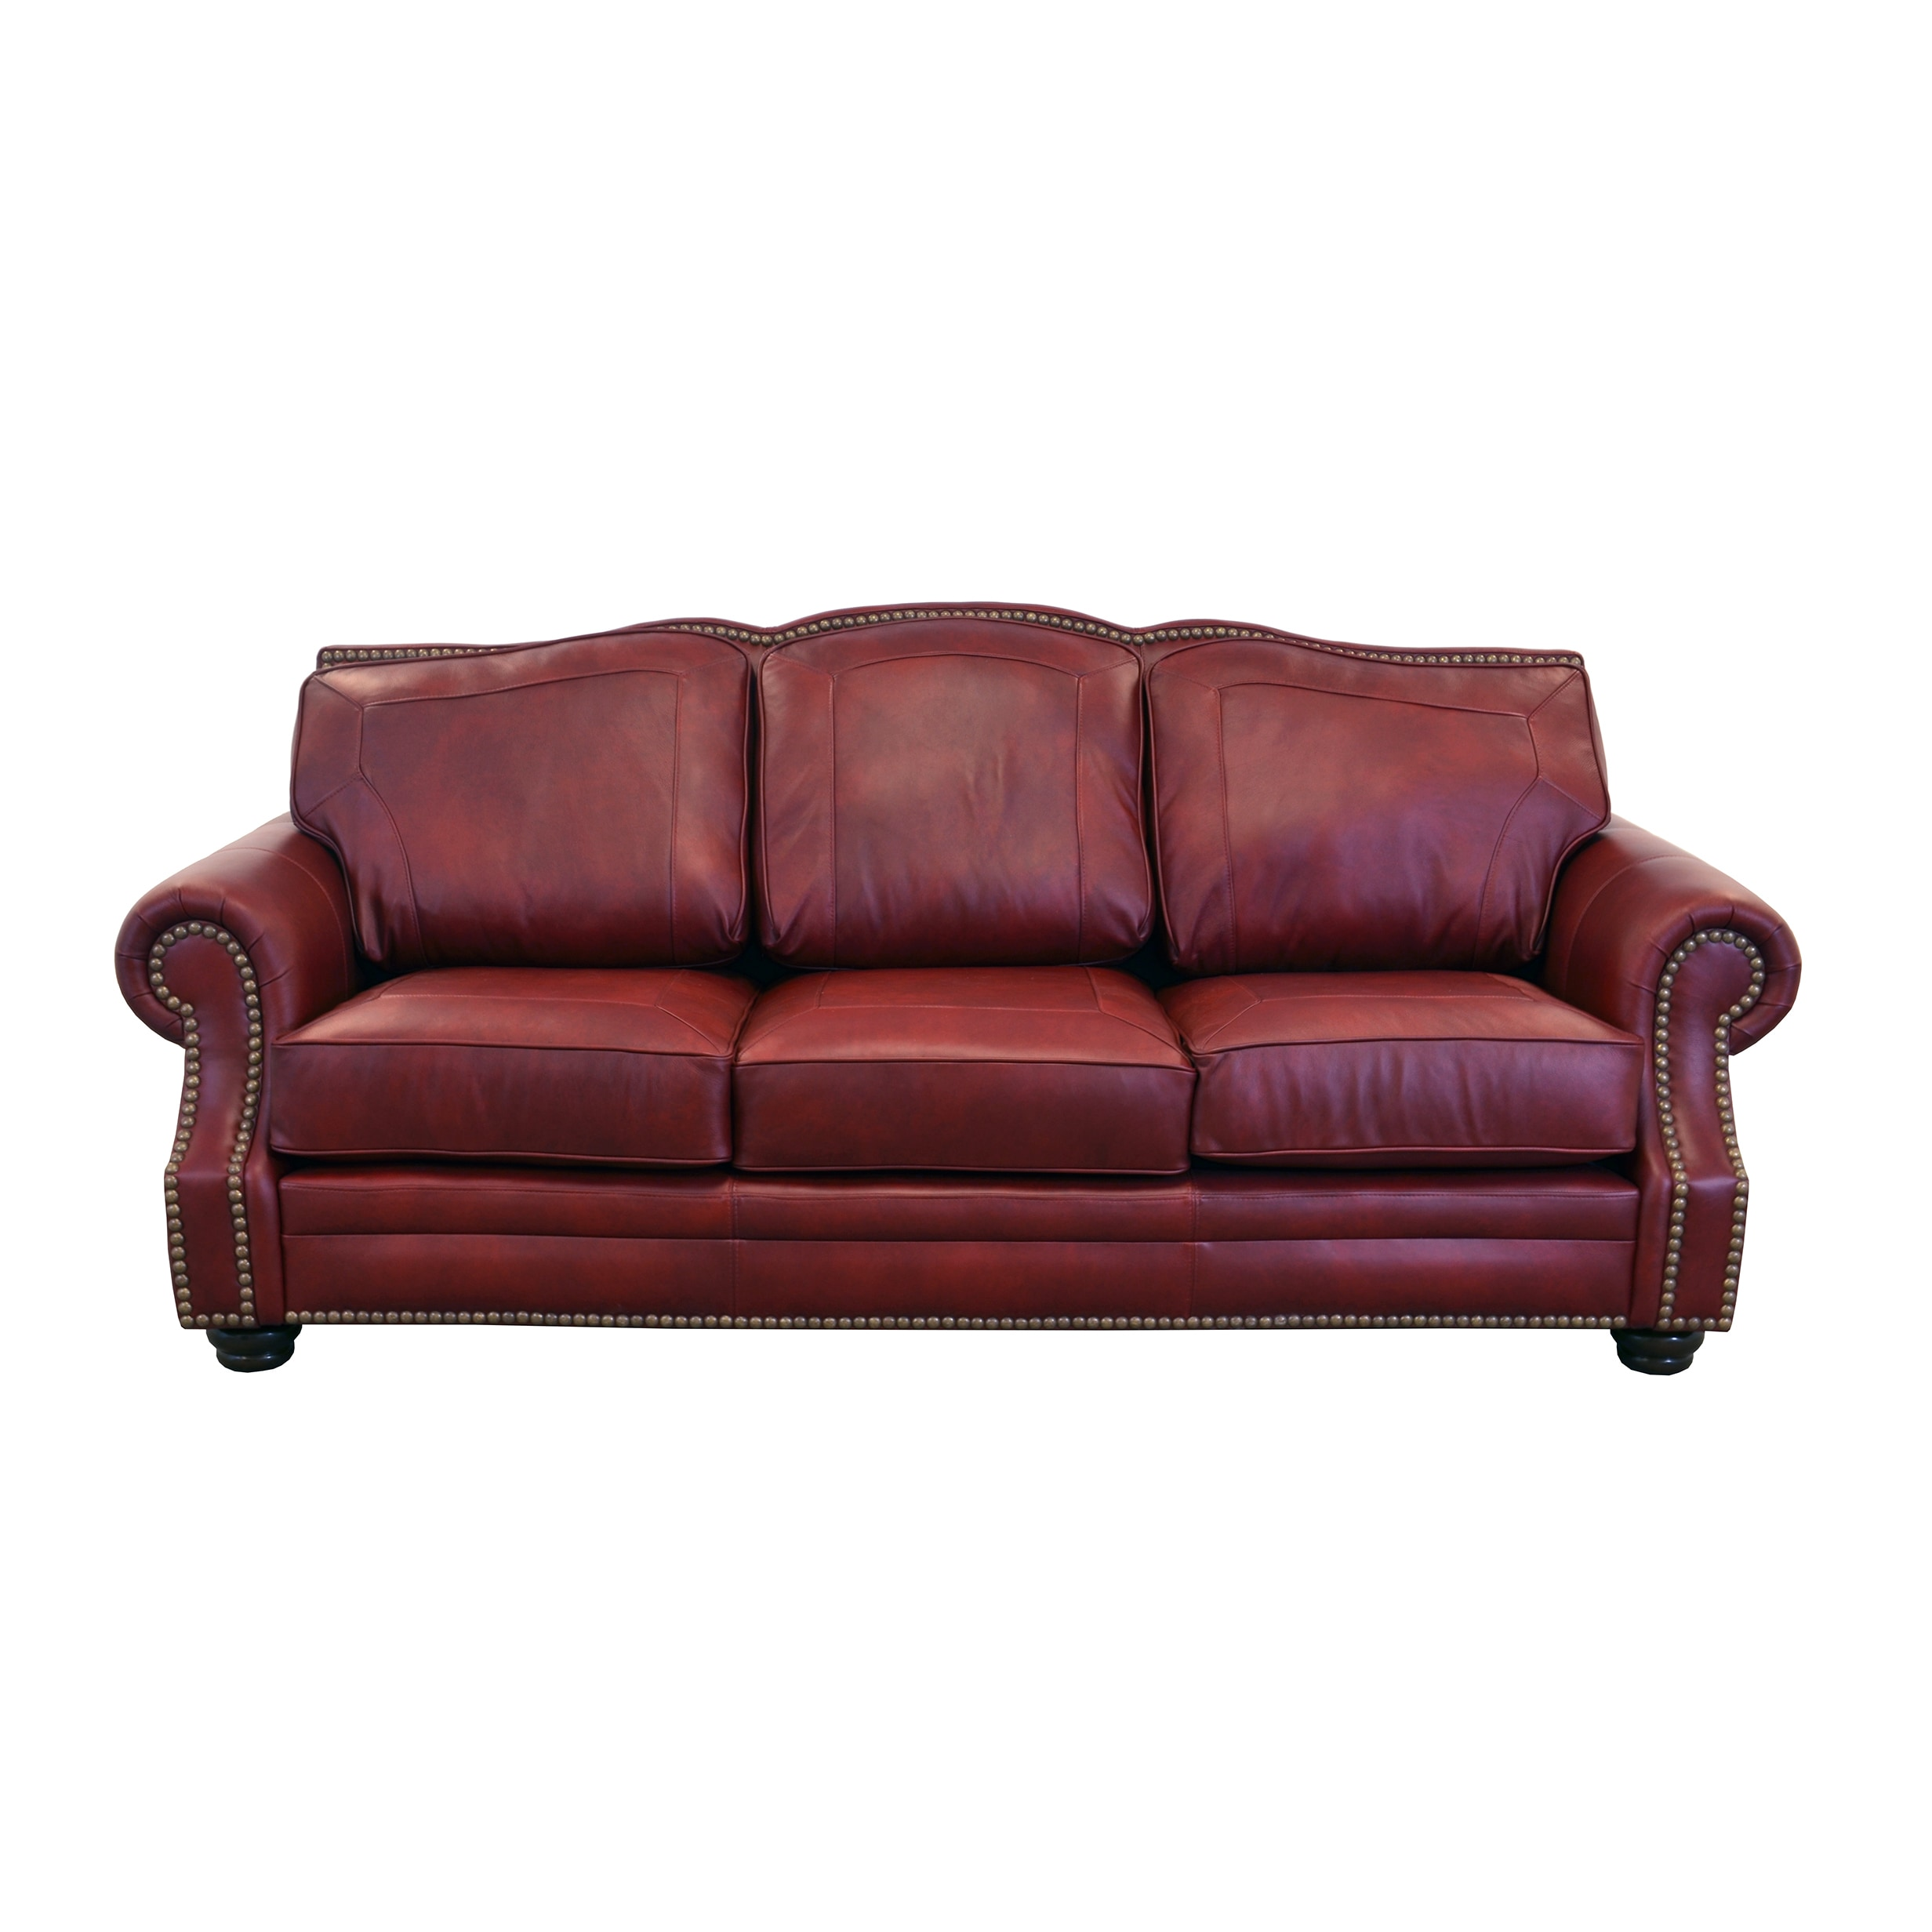 Shop Made To Order Winchester Genuine Top Grain Leather Nailhead